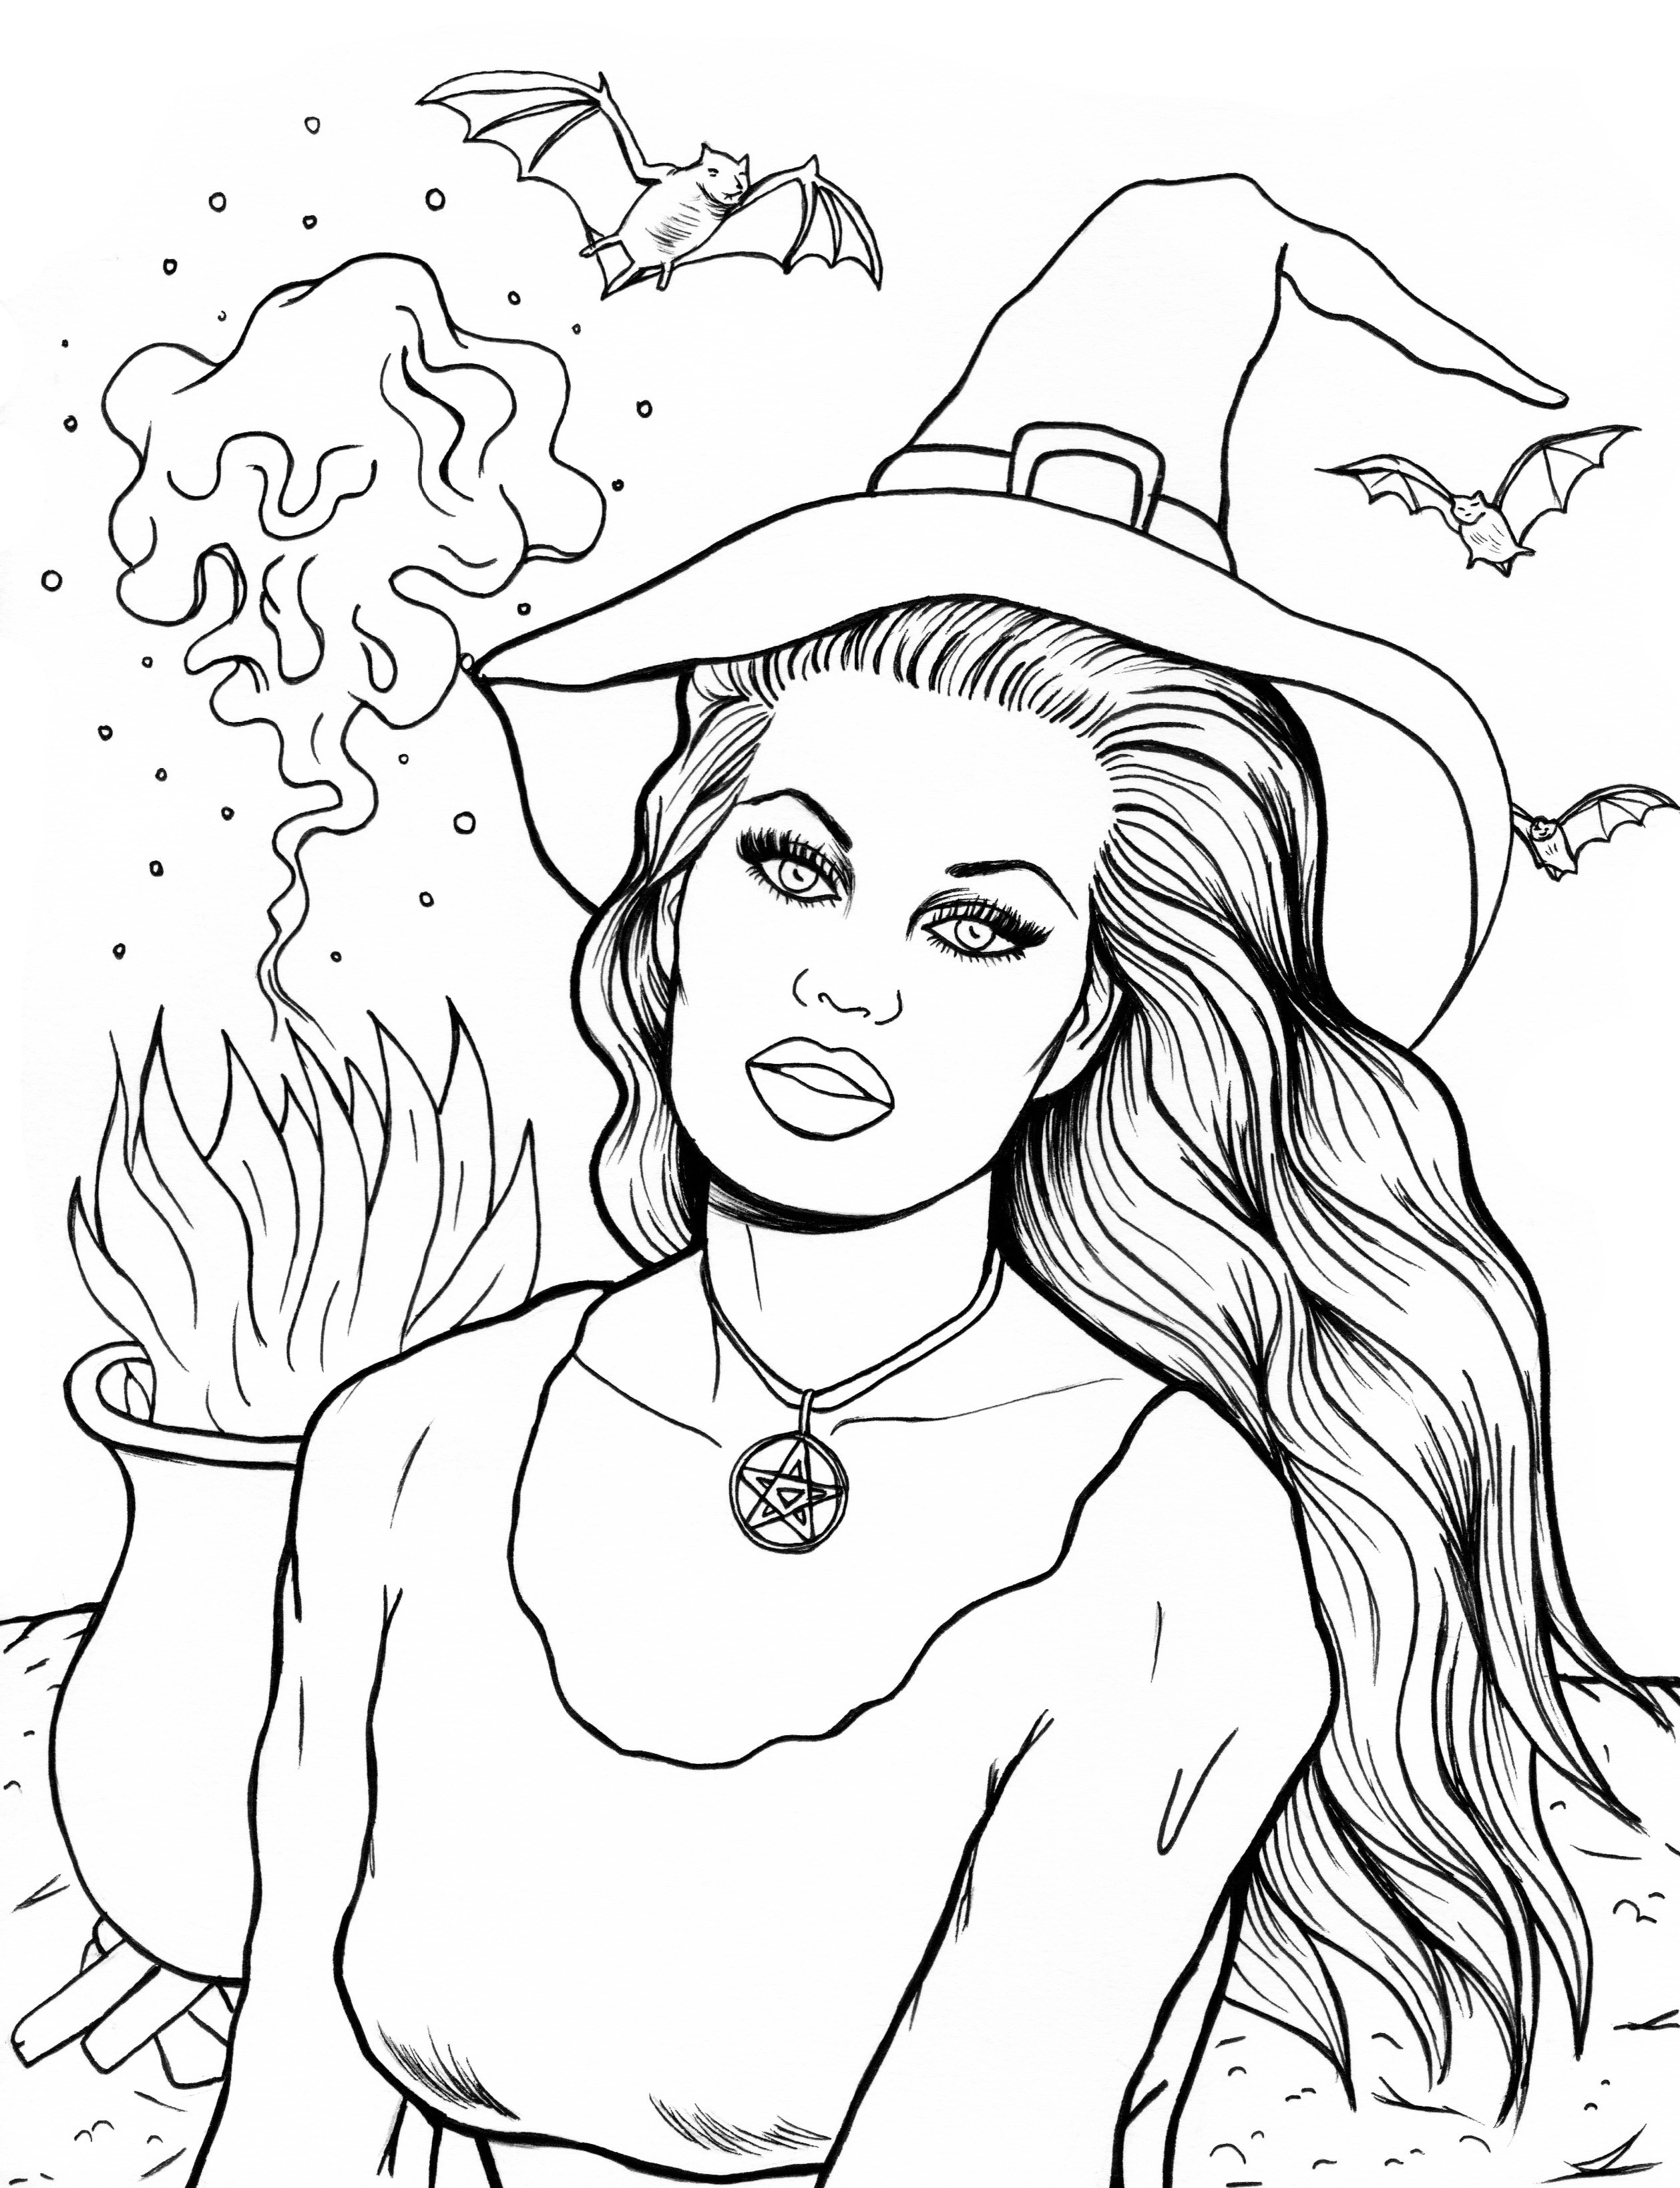 coloring halloween activities 6 best images of free halloween printables coloring halloween activities coloring